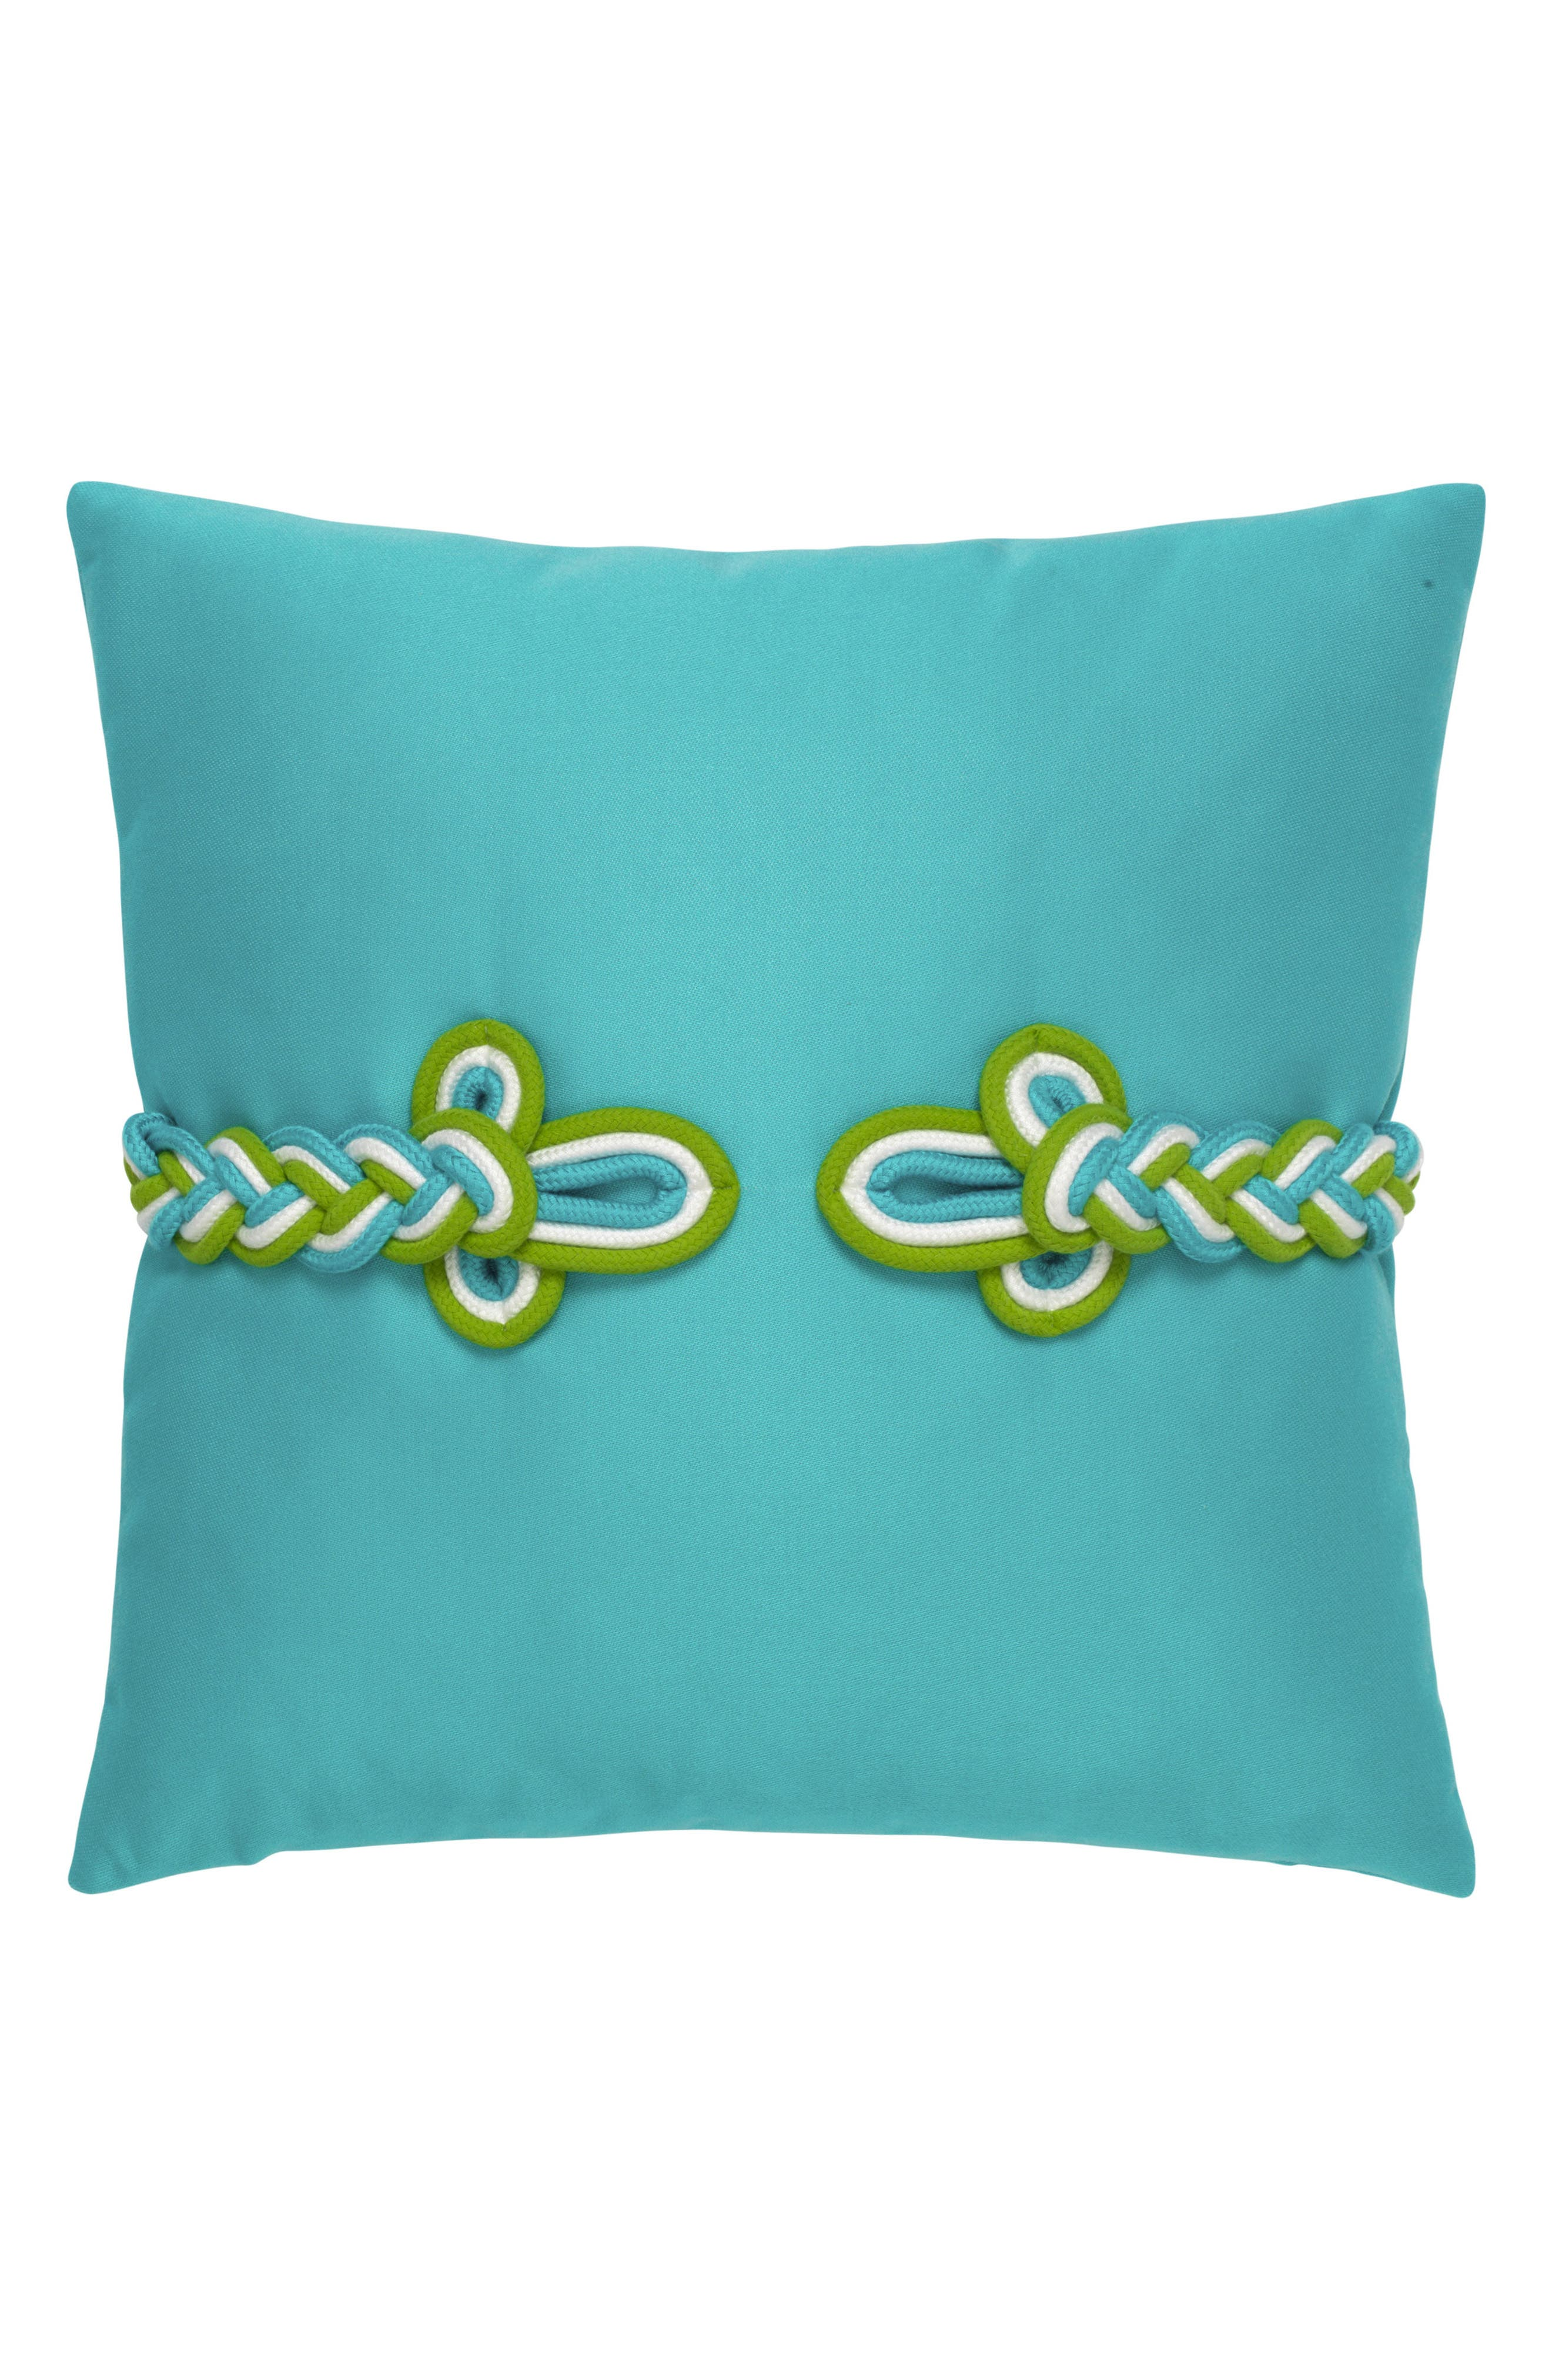 Aruba Frogs Clasp Indoor/Outdoor Accent Pillow,                             Main thumbnail 1, color,                             400